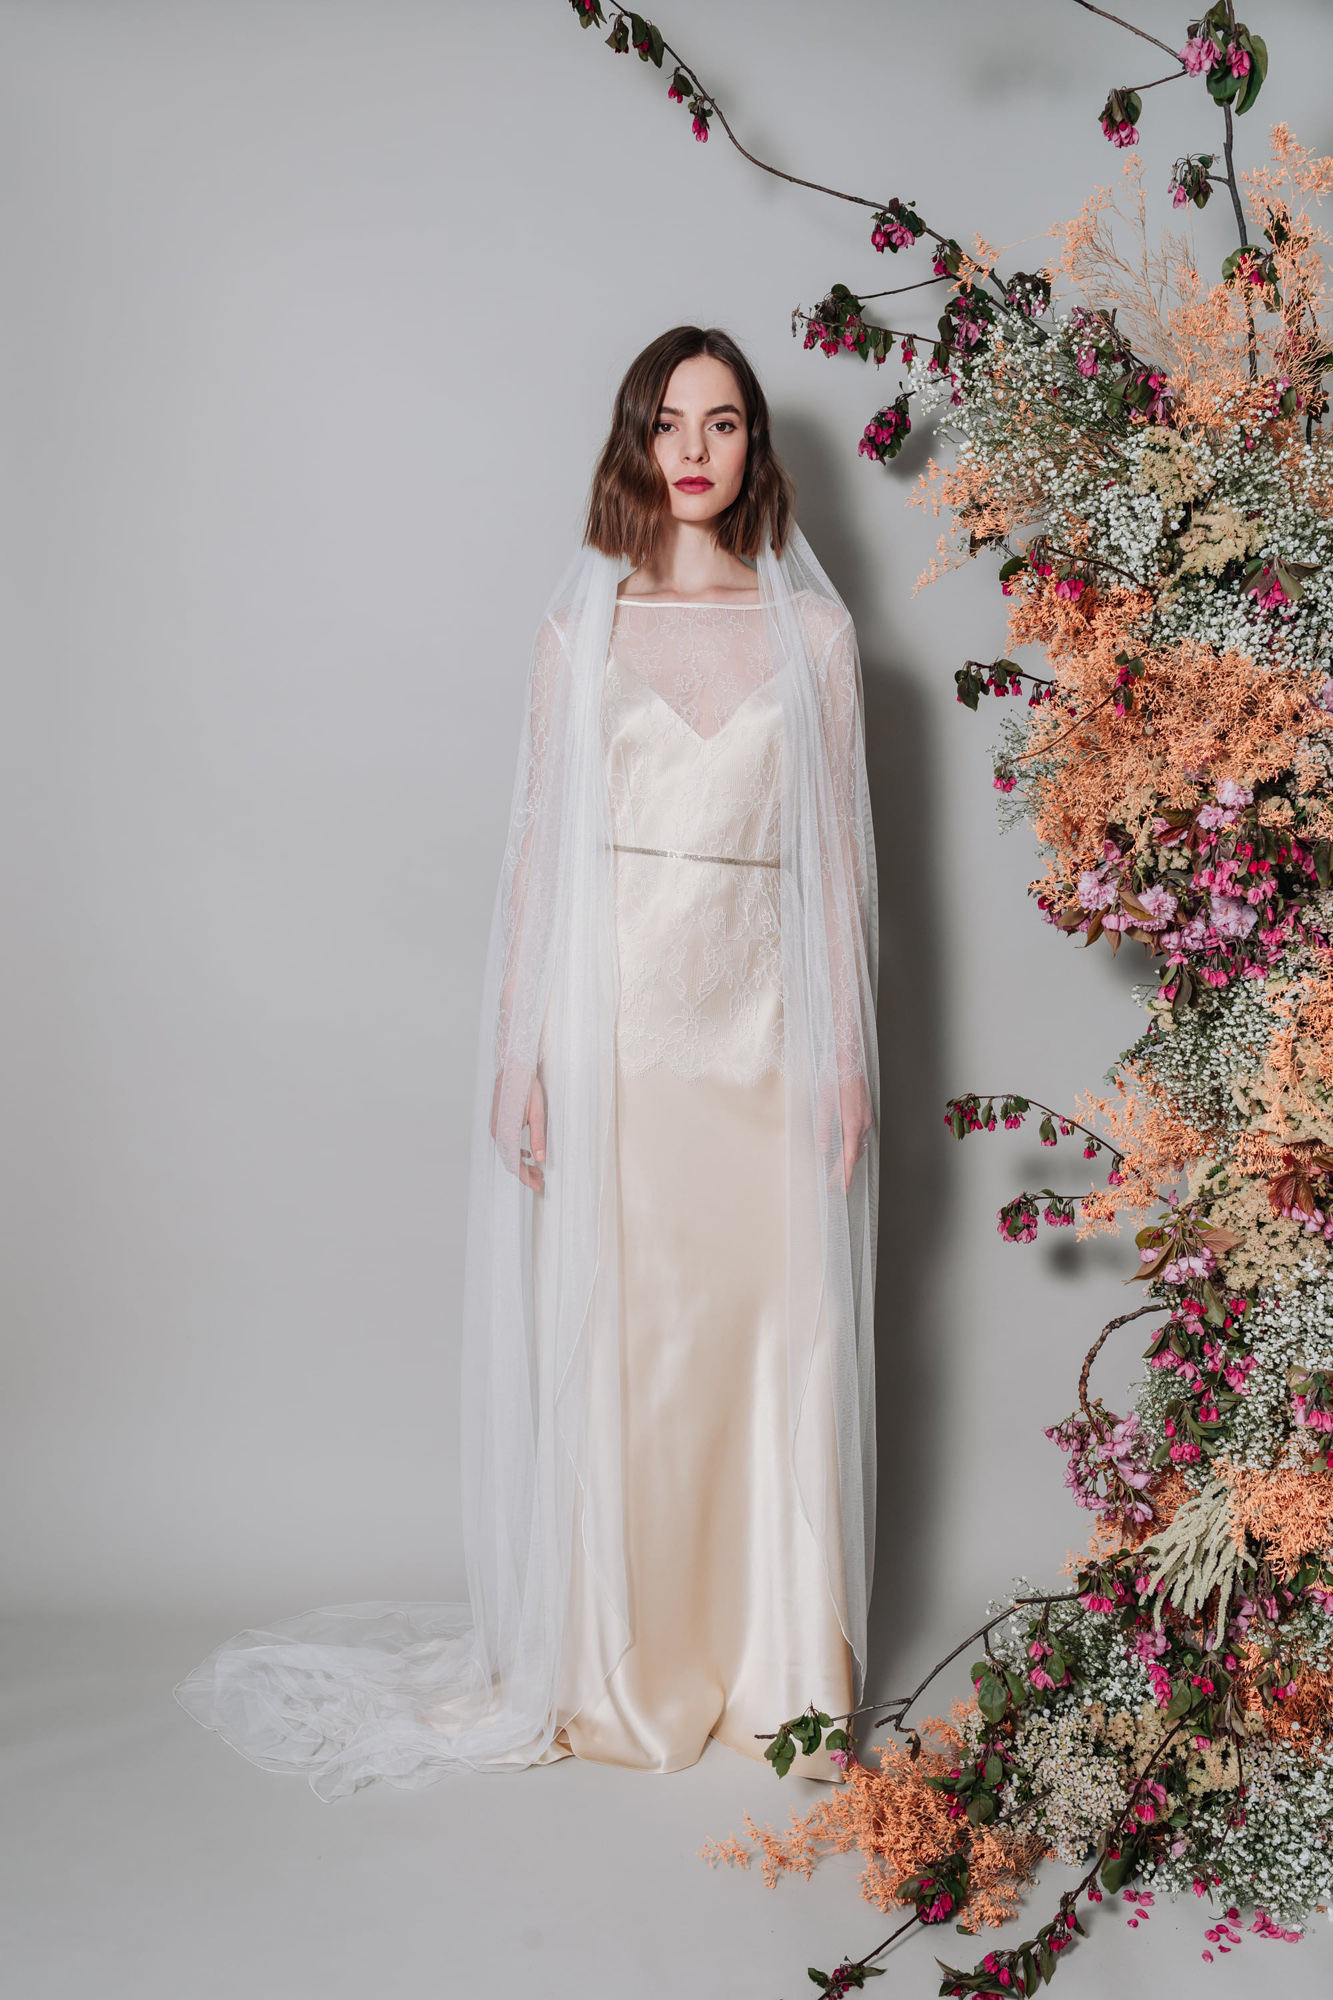 Kate-Beaumont-Sheffield-Thistle-Bridal-Separates-Two-Piece-Lace-Silk-Wedding-Gown-11.jpg